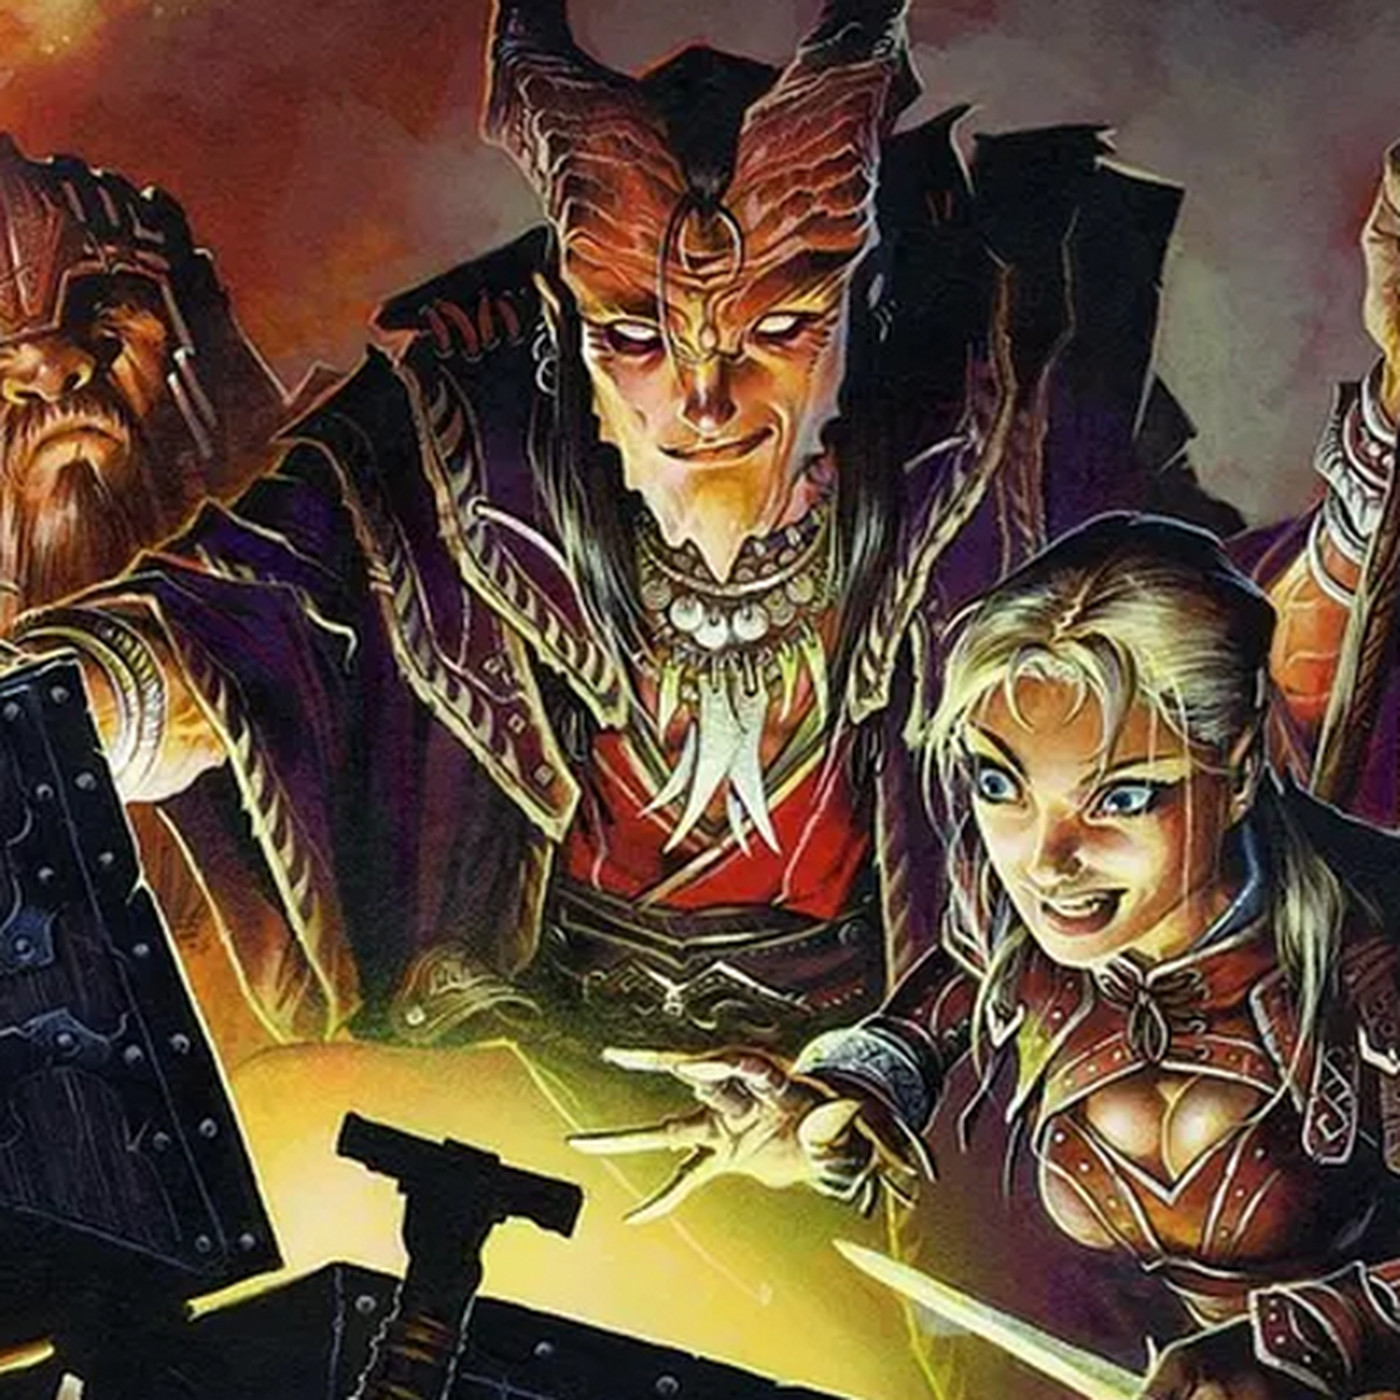 Dungeons & Dragons is finally getting a proper digital app (update